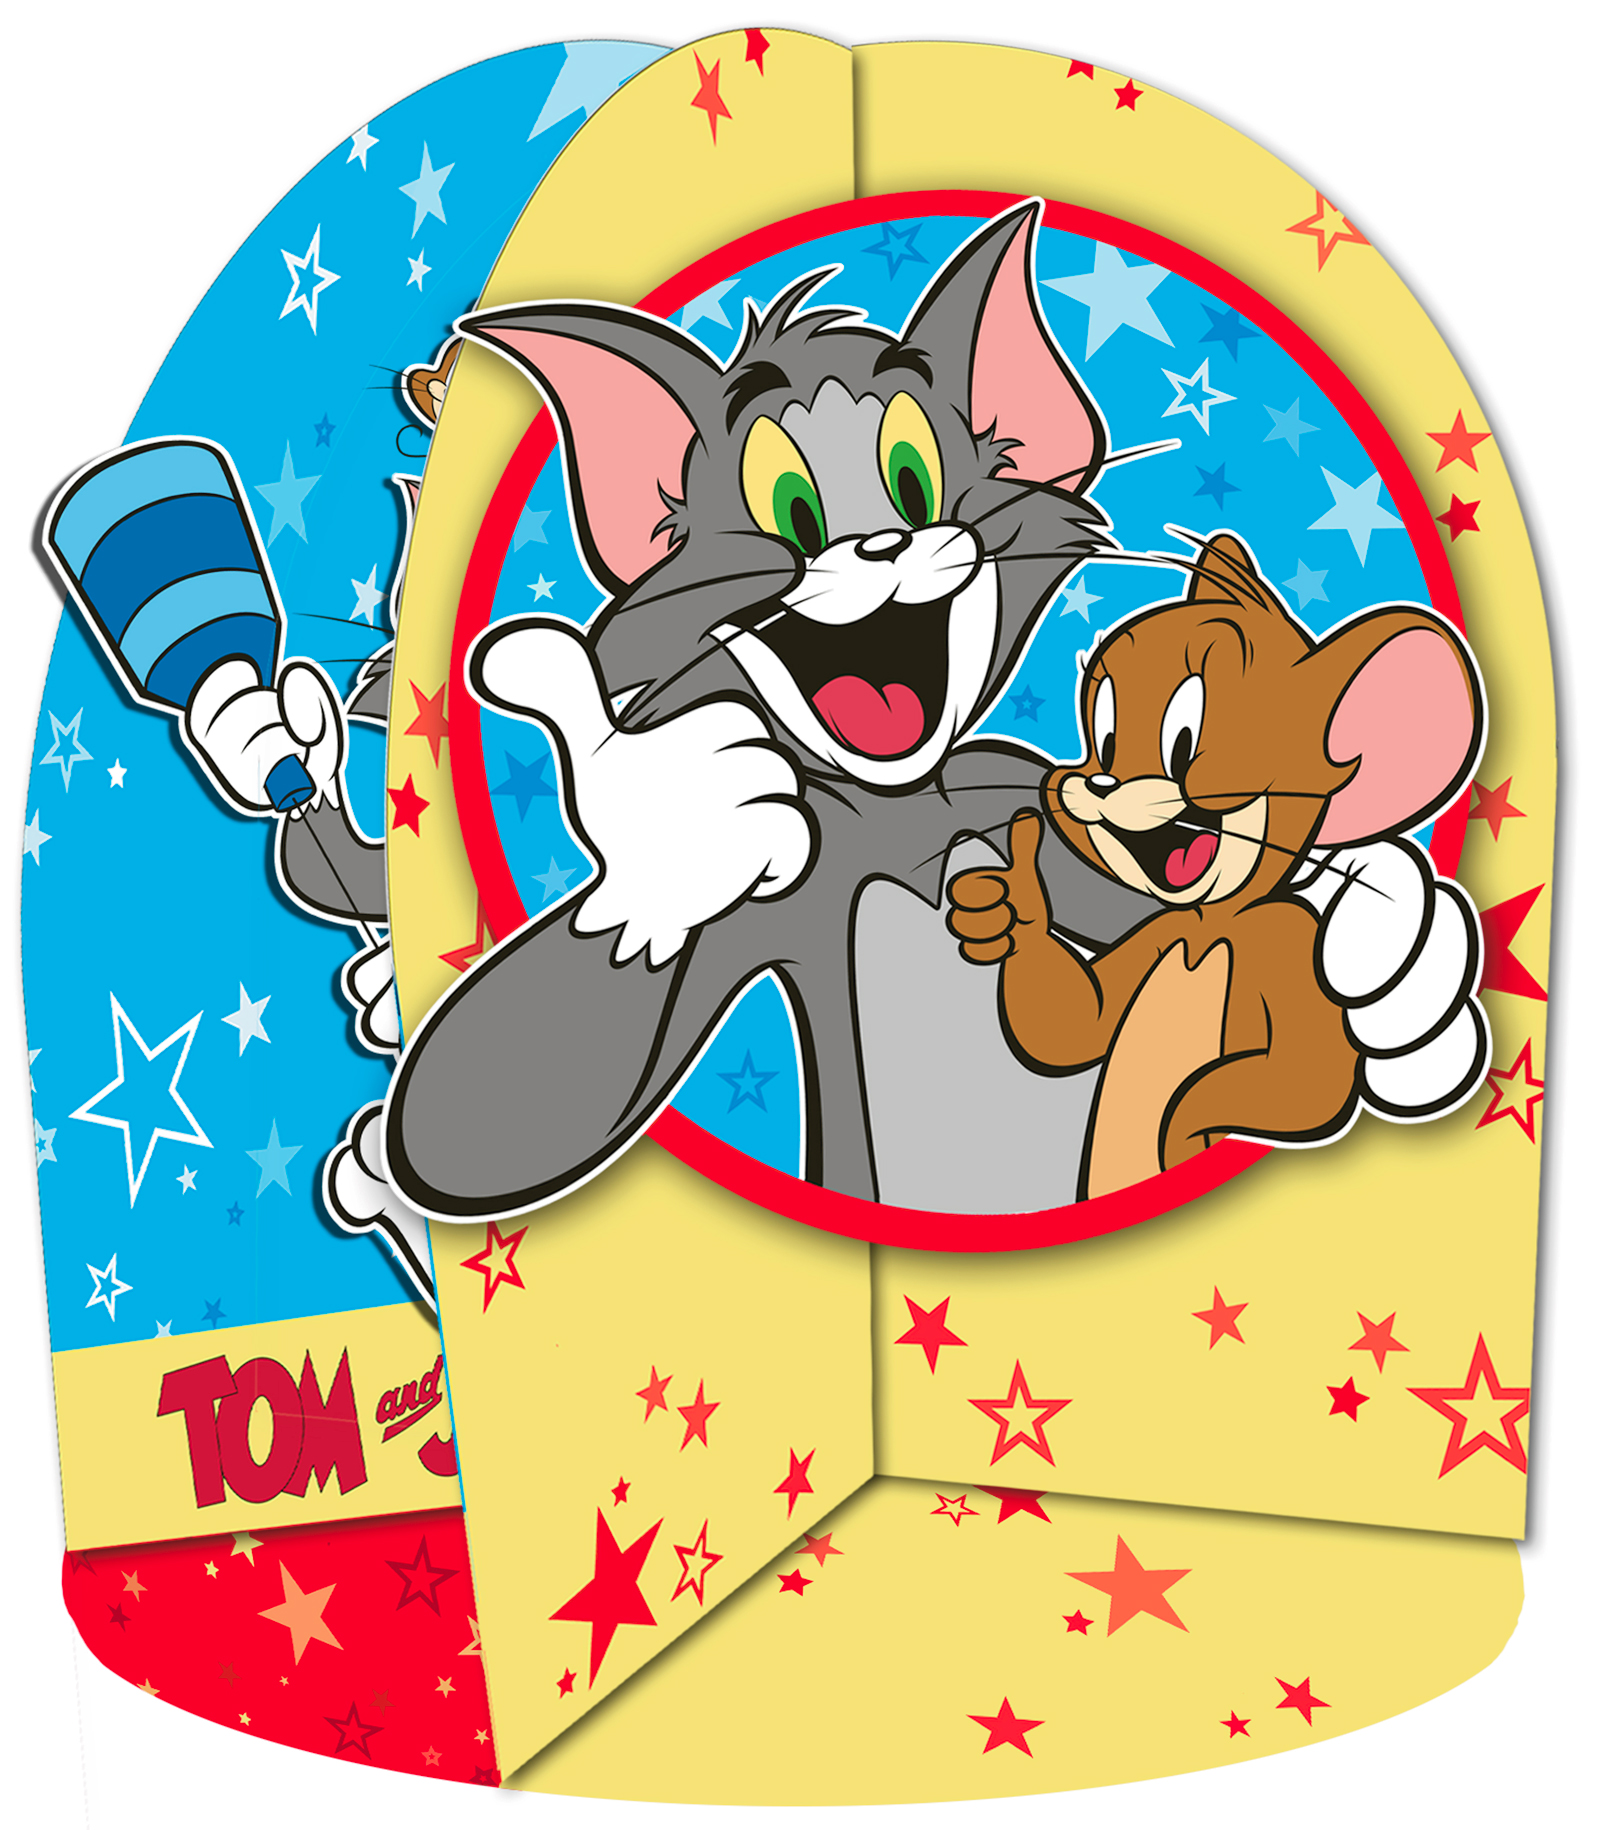 Tom and Jerry Centerpiece BirthdayExpresscom